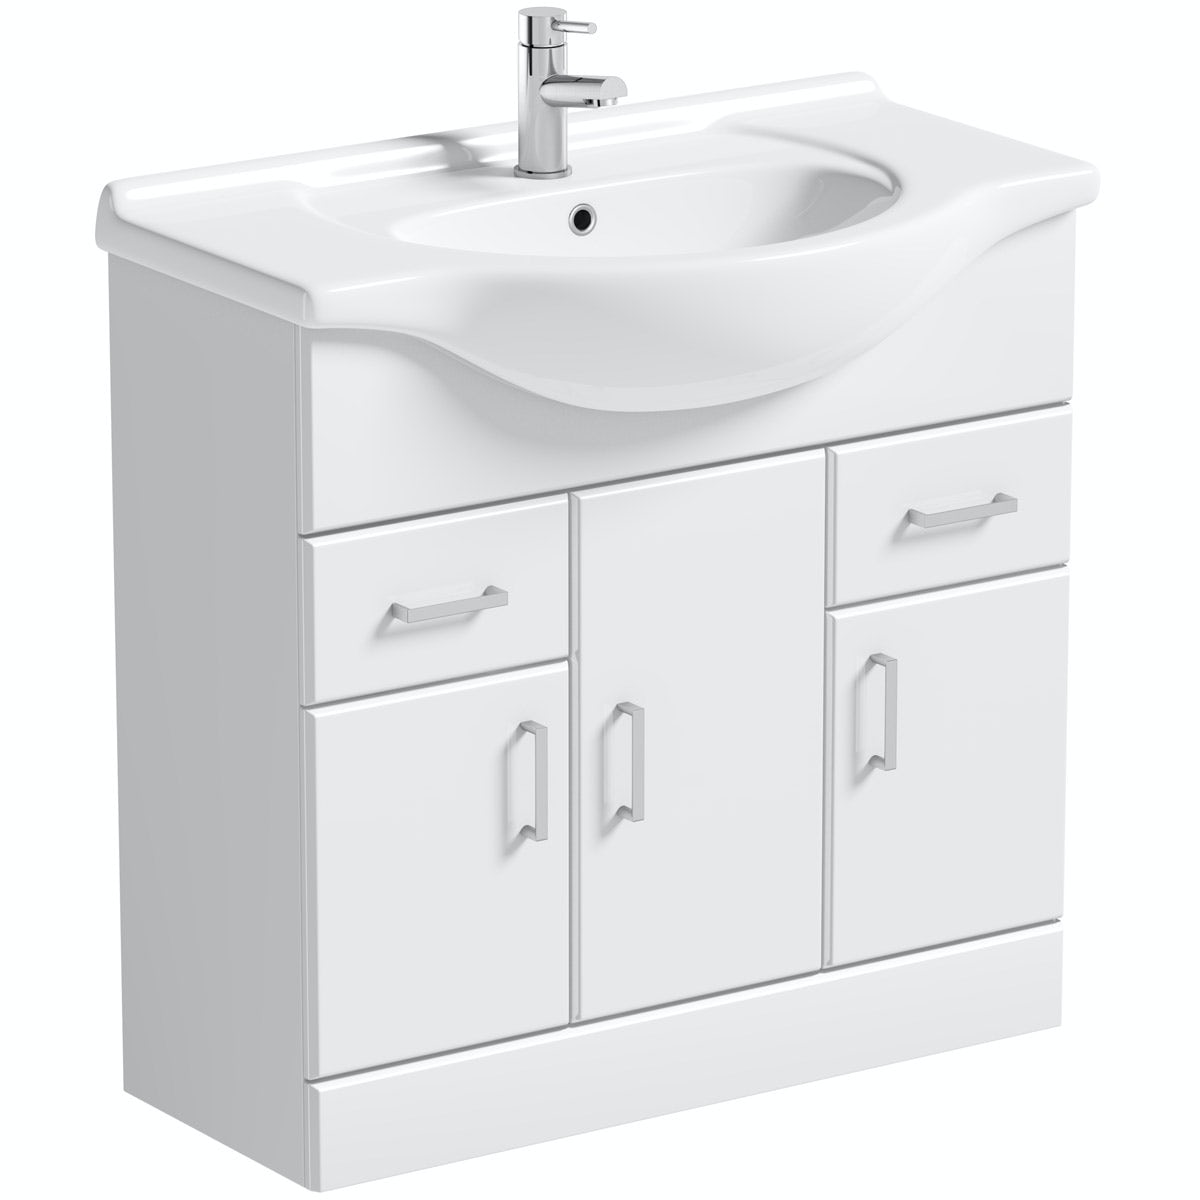 Orchard Eden white vanity unit and basin 850mm